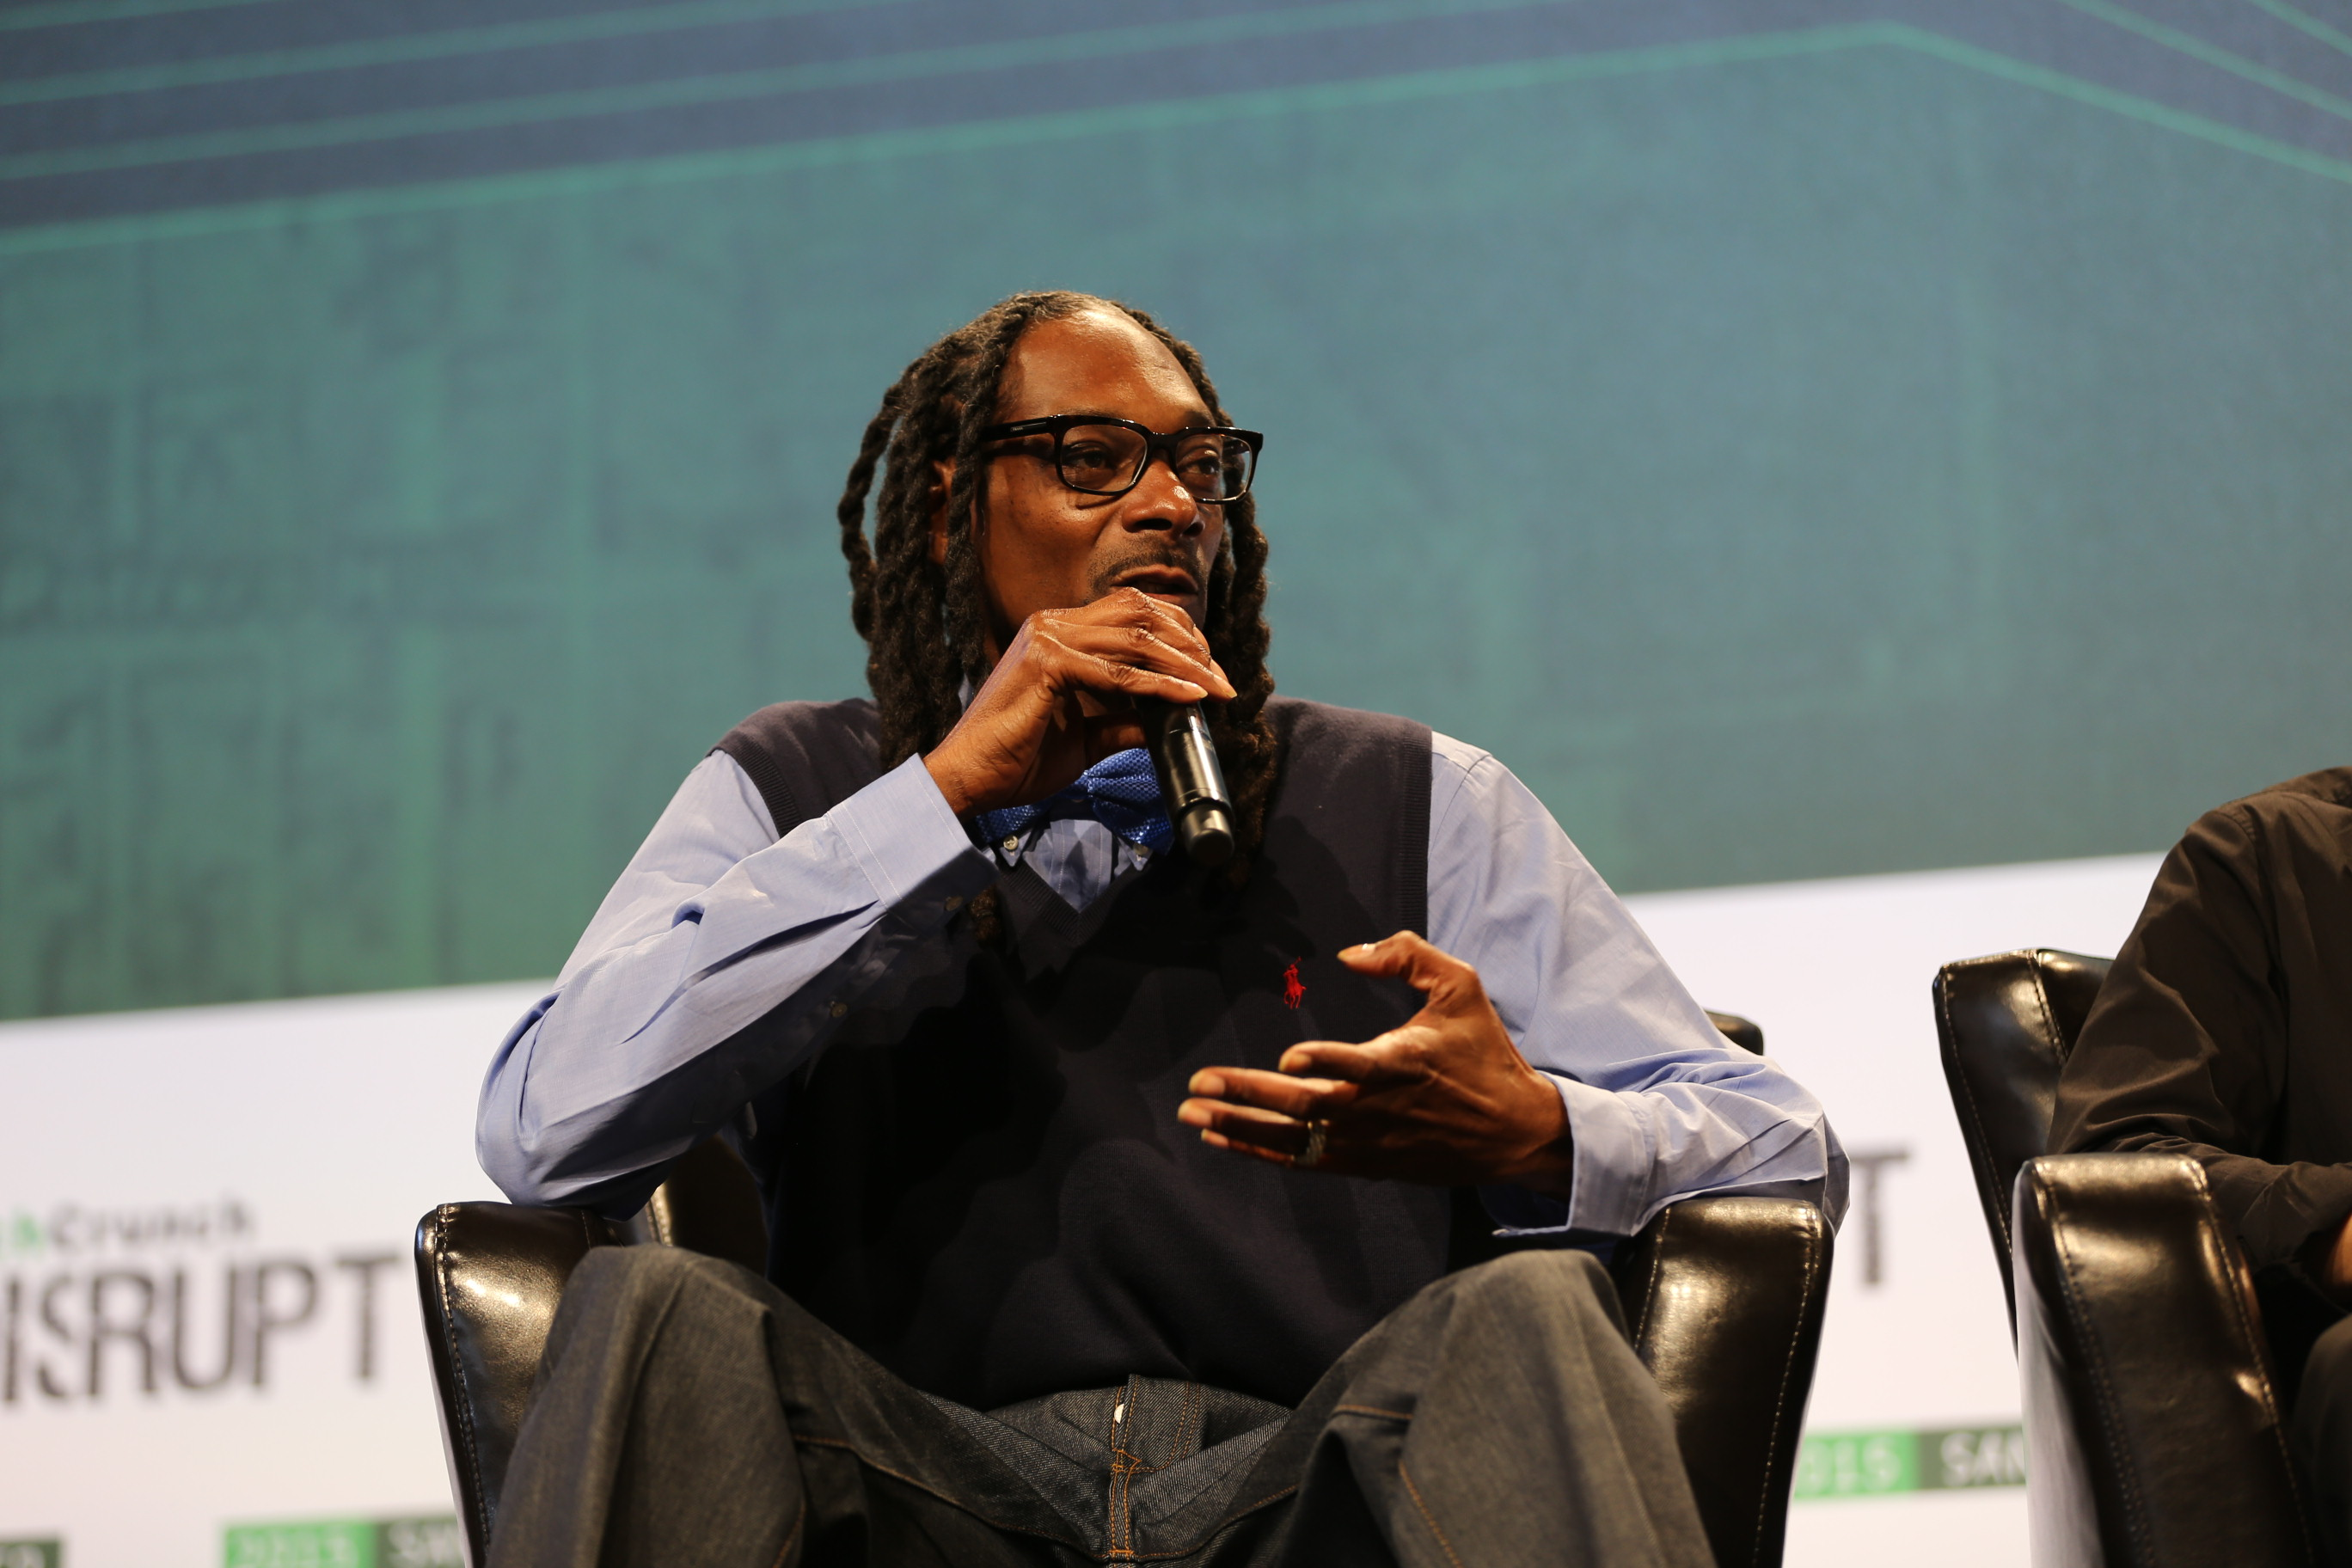 Snoop dogg on why hes investing in gameon techcrunch kristyandbryce Gallery